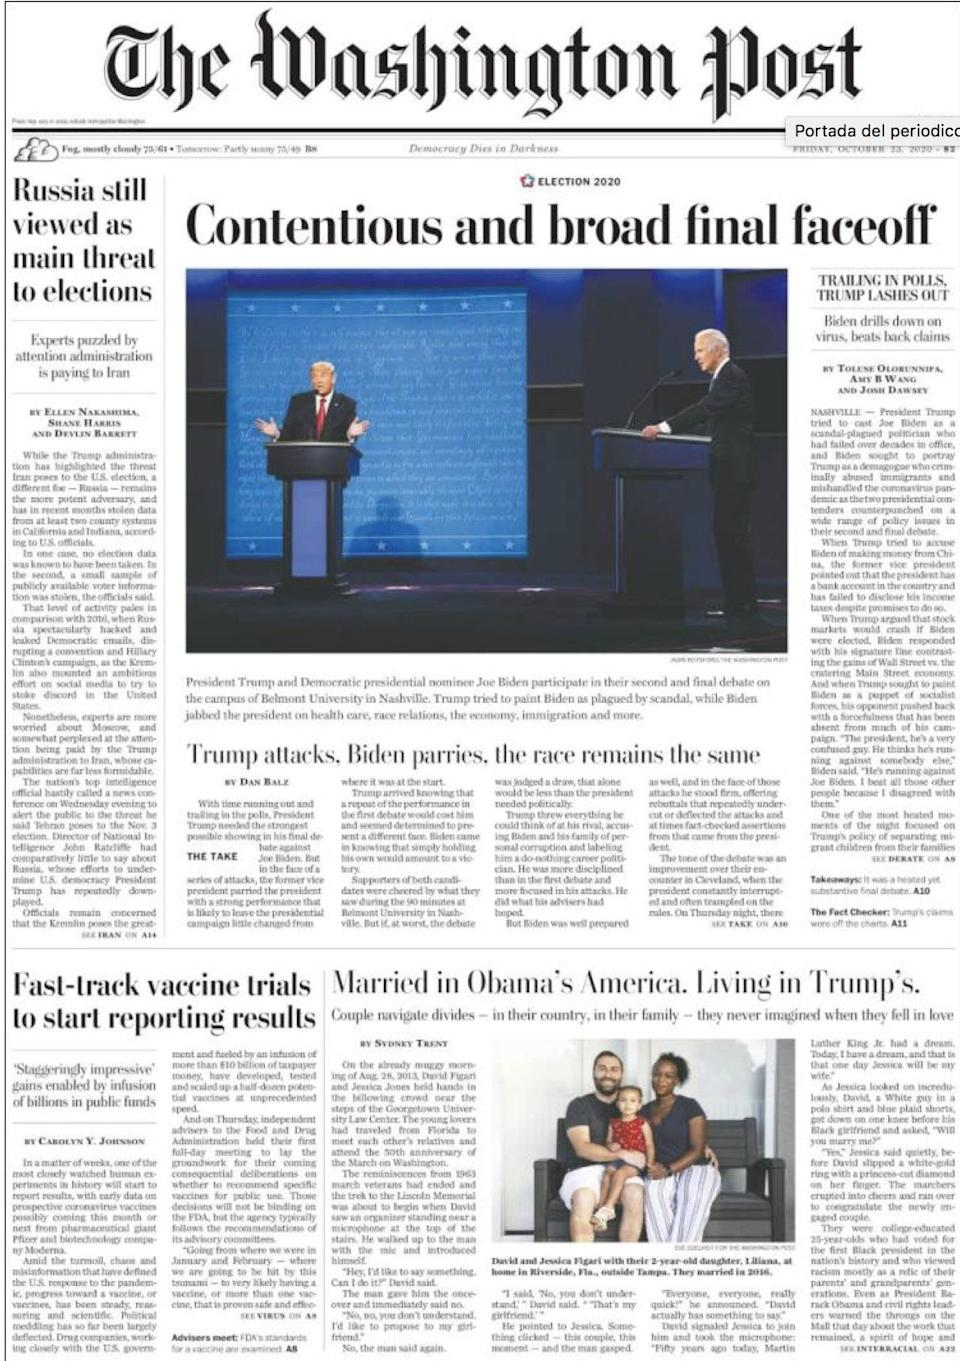 The front page of the Washington Post on Friday